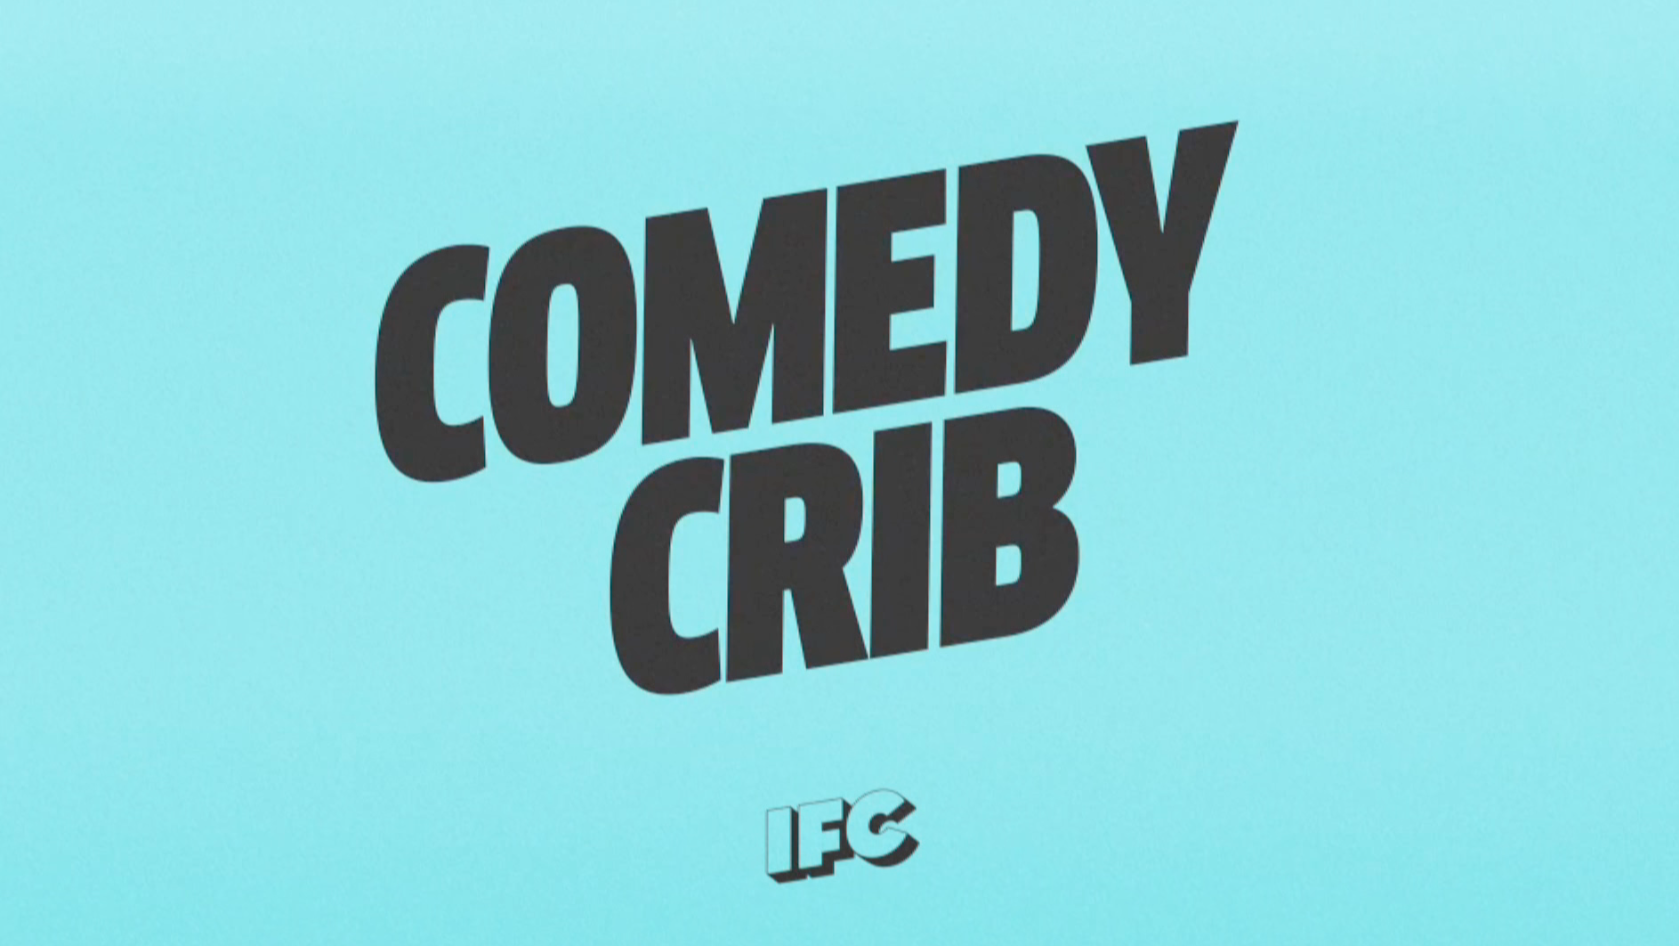 IFC COMEDY CRIB - 6 SERIES AS PART OF LAUNCH SLATE:RAGELAURIEFAERIESBOTTLEDHOW SH*T WORKSCLICKBAIT OVERLOAD